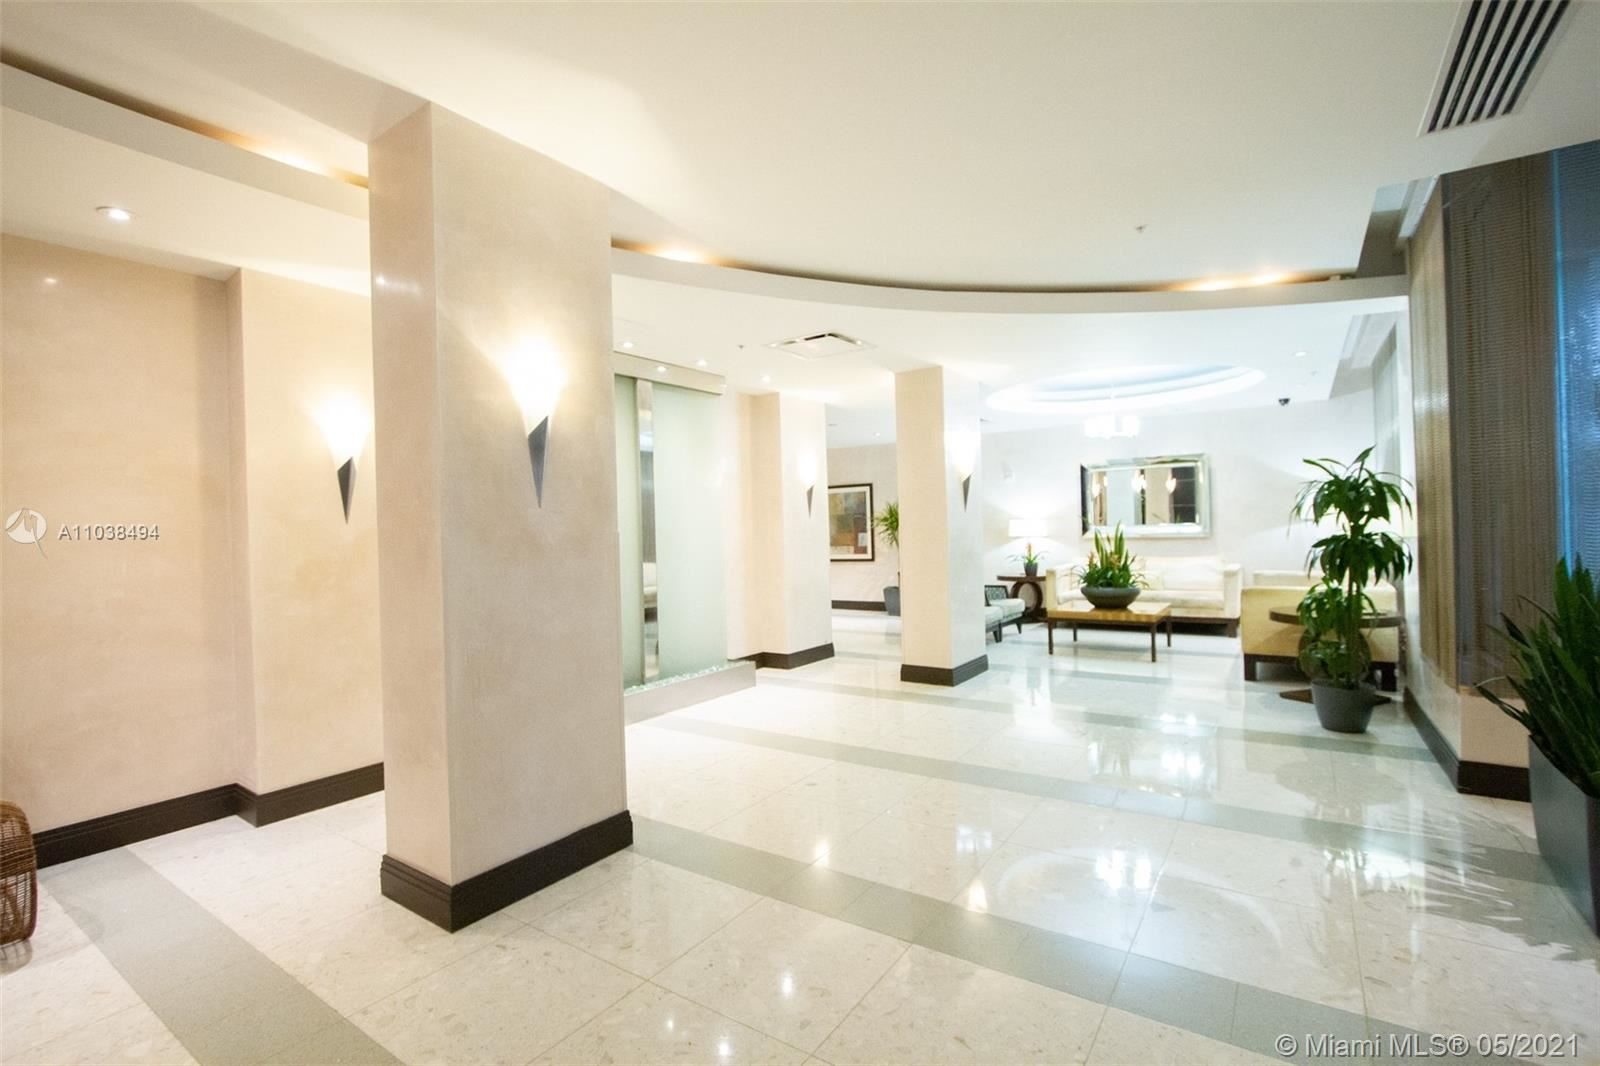 Photo of 3801 S Ocean Dr #16S, Hollywood, FL 33019 (MLS # A11038494)